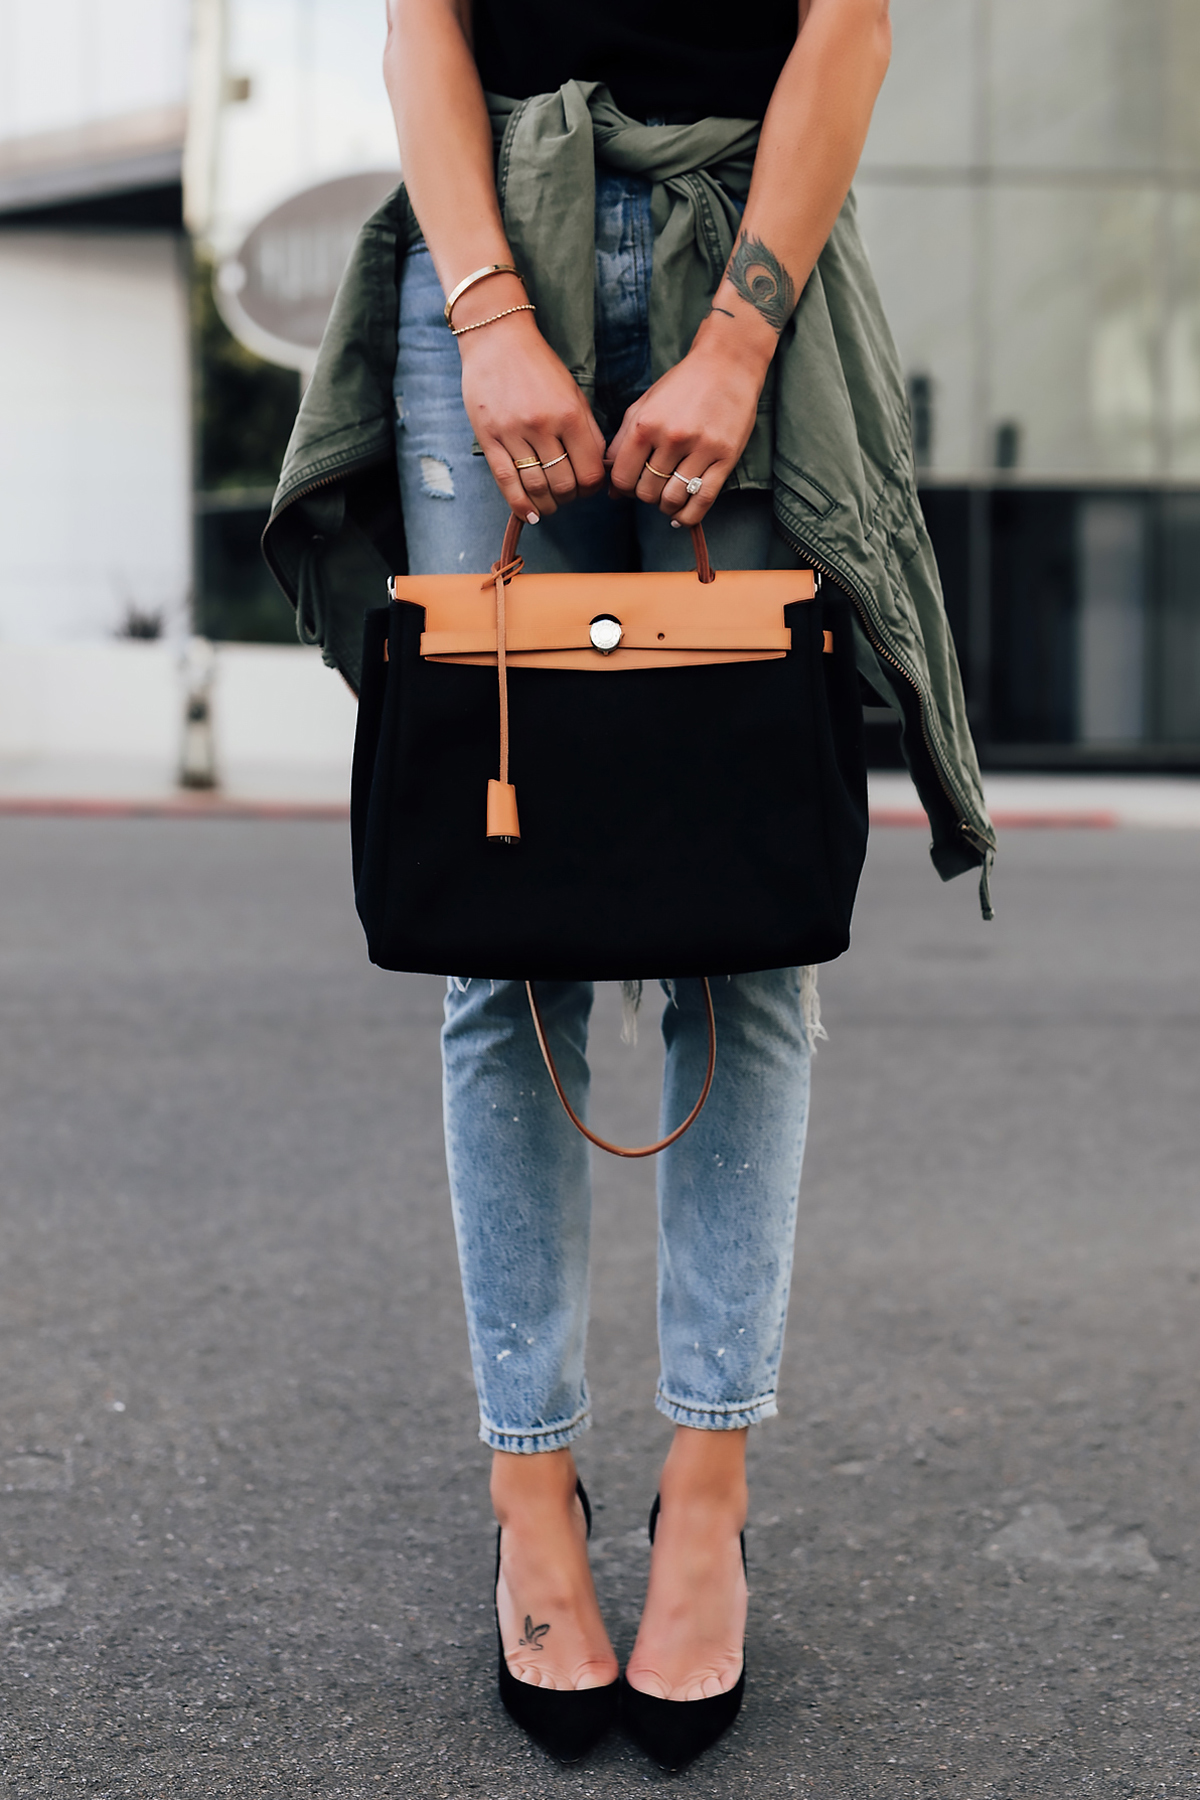 Woman Wearing Denim Ripped Skinny Jeans Green Utility Jacket Black Pumps Vintage Hermes Herbag Black Tan Fashion Jackson San Diego Fashion Blogger Street Style